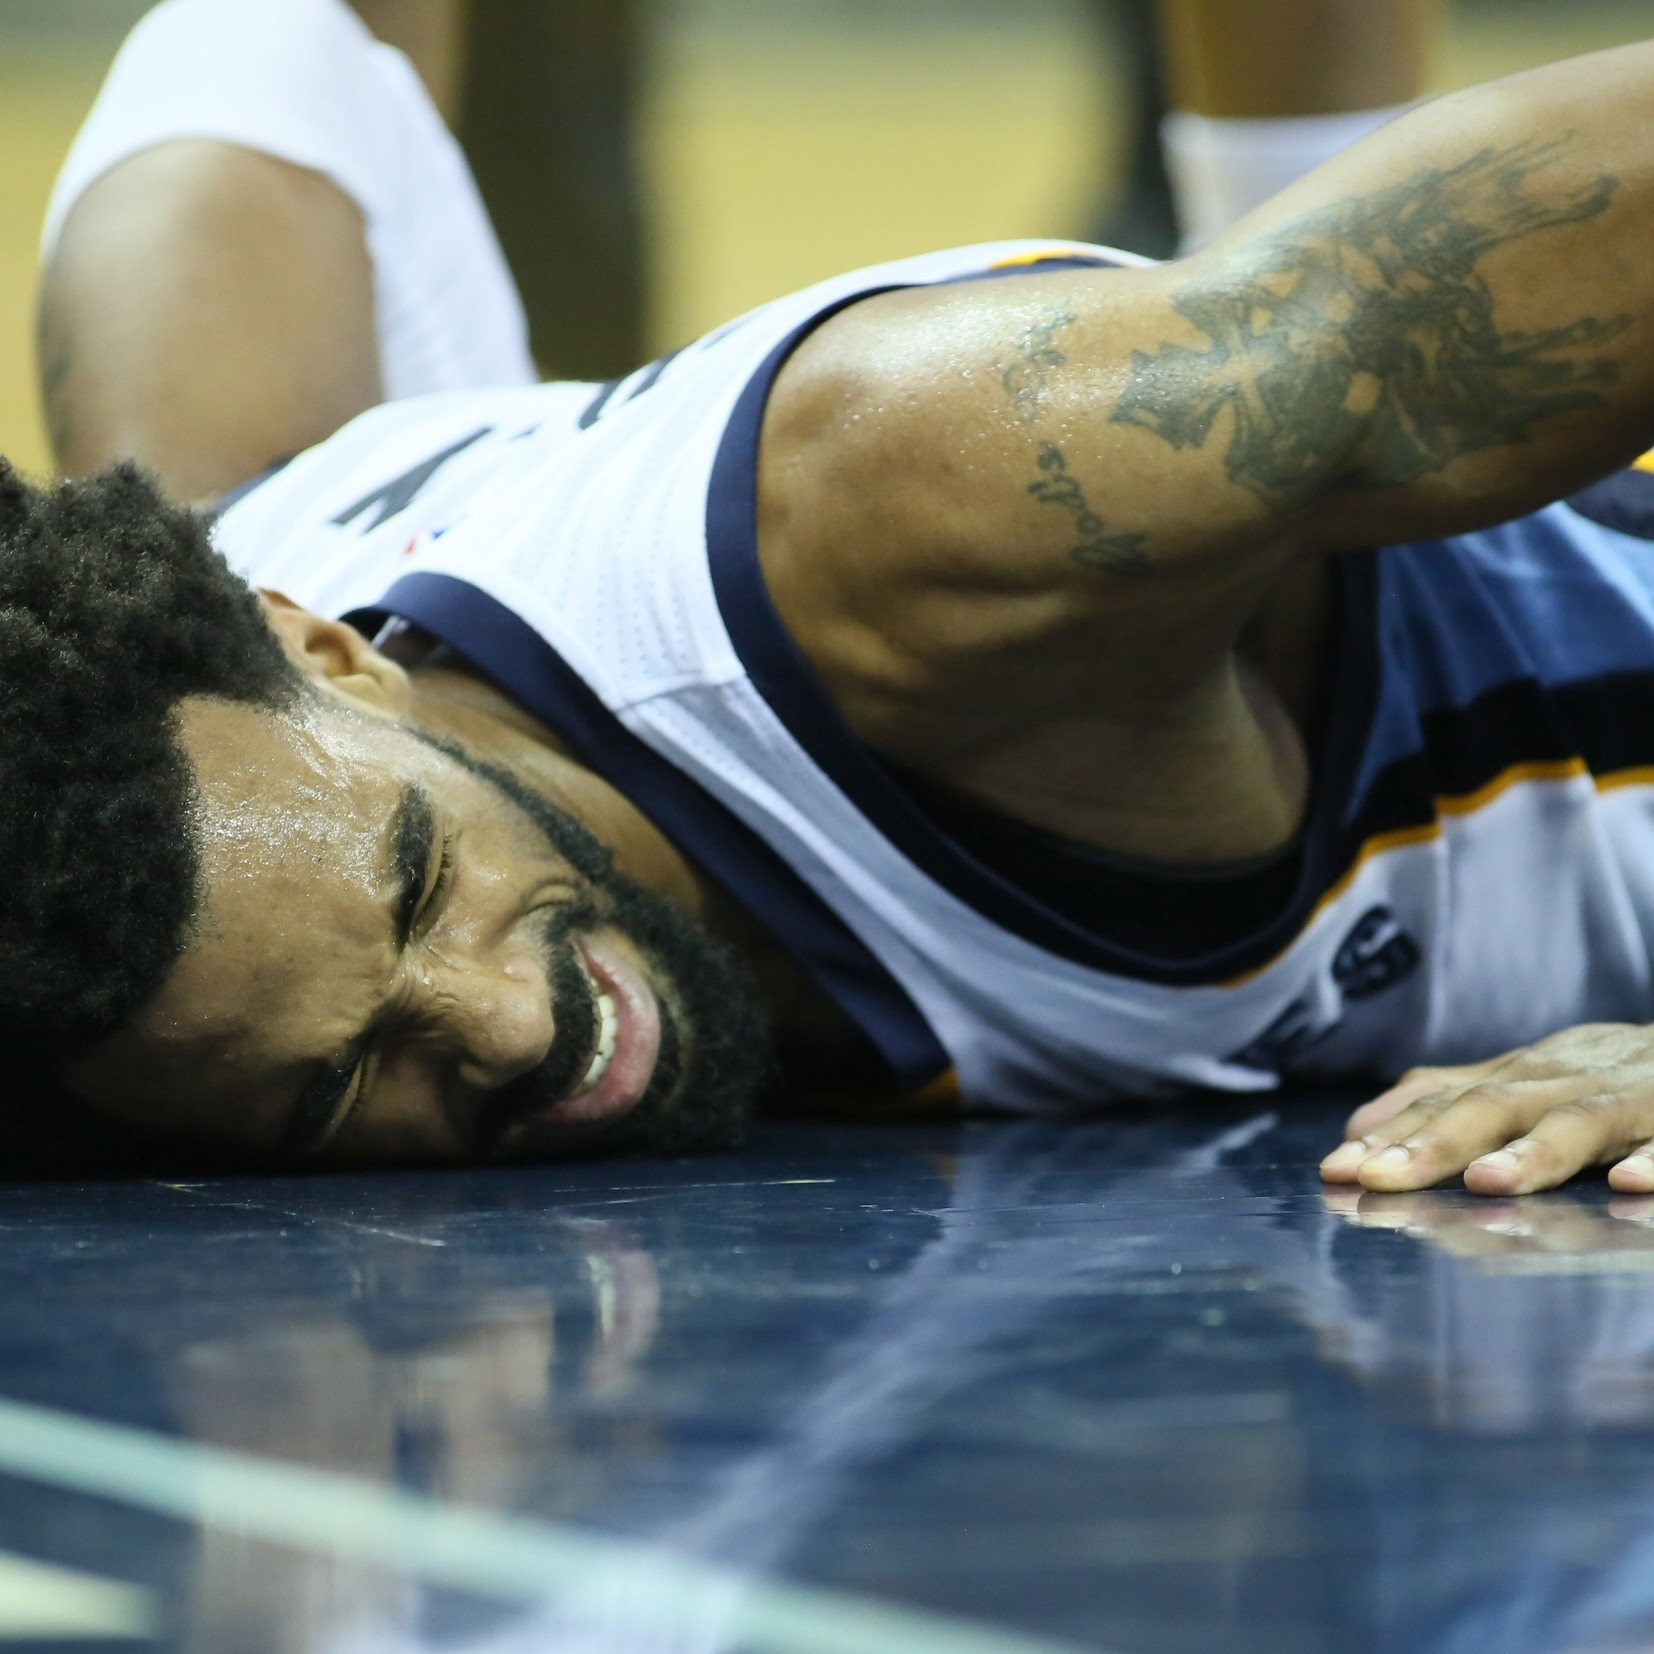 With-mike-conley-out-the-future-looks-grim-for-the-grizzlies-1480469214.jpg?crop=0